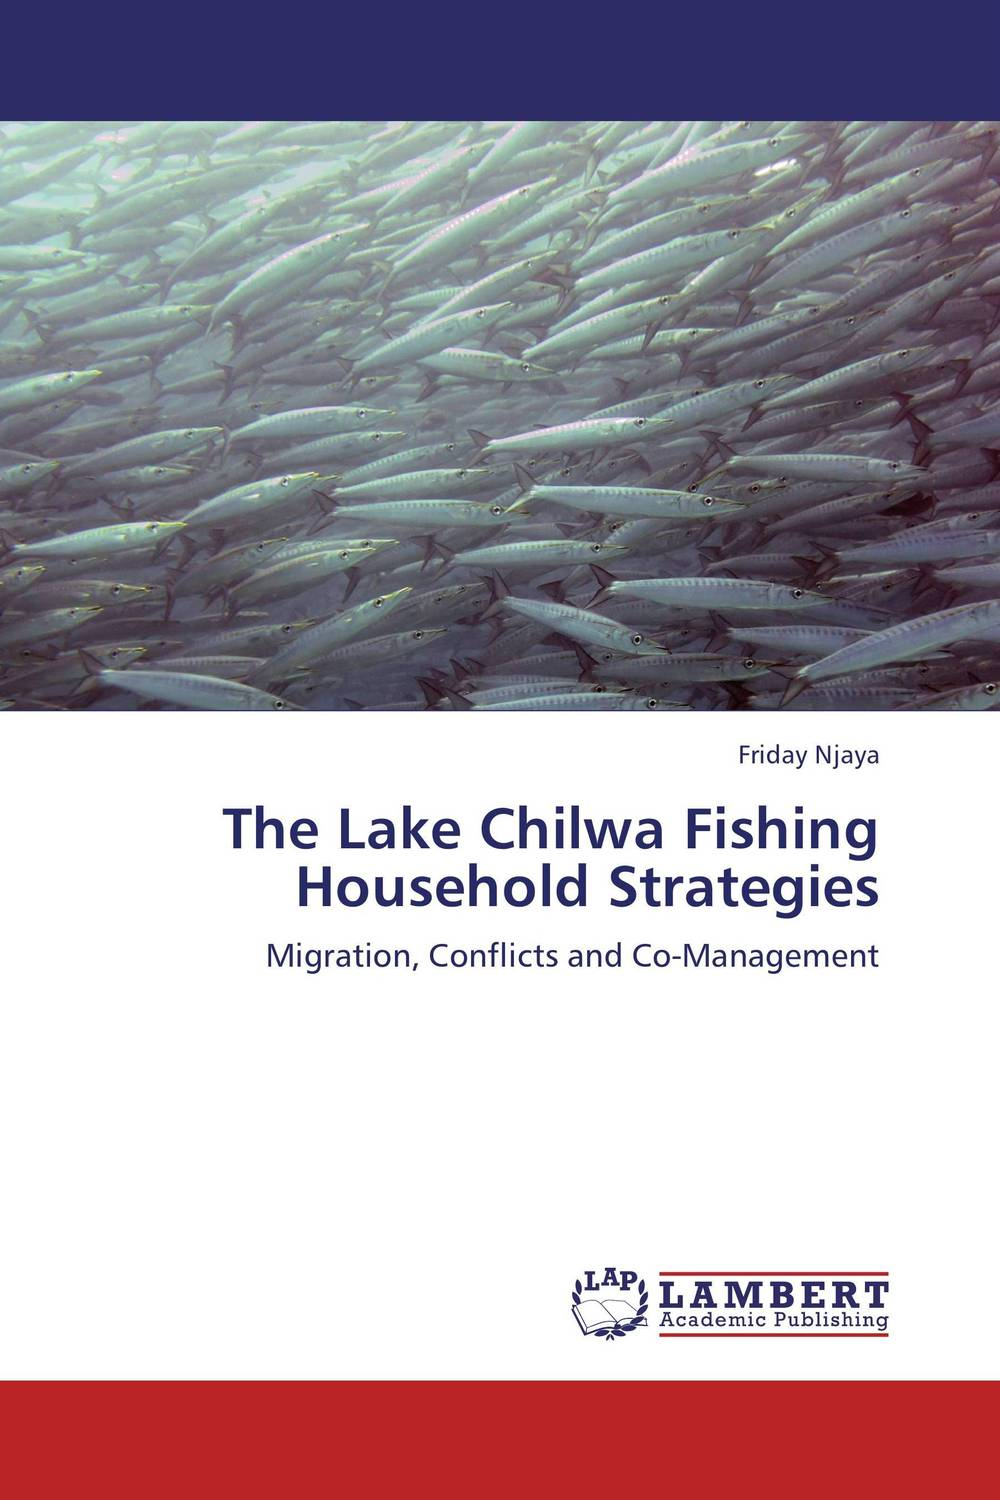 The Lake Chilwa Fishing Household Strategies reese t moore f skills first the castle by the lake level 2 teacher s book